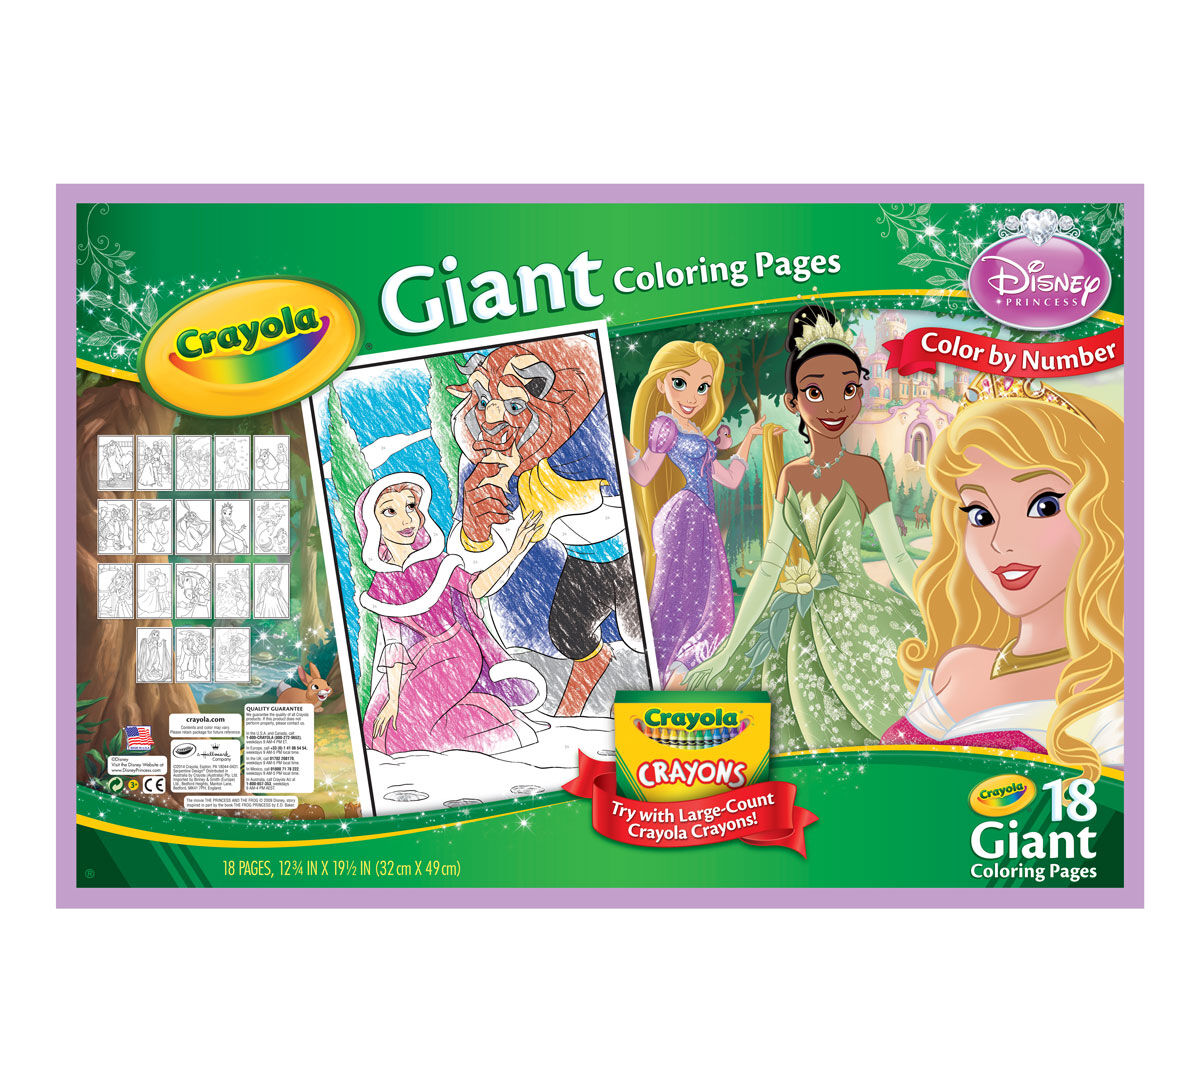 Giant Coloring Pages Disney Princess Crayola